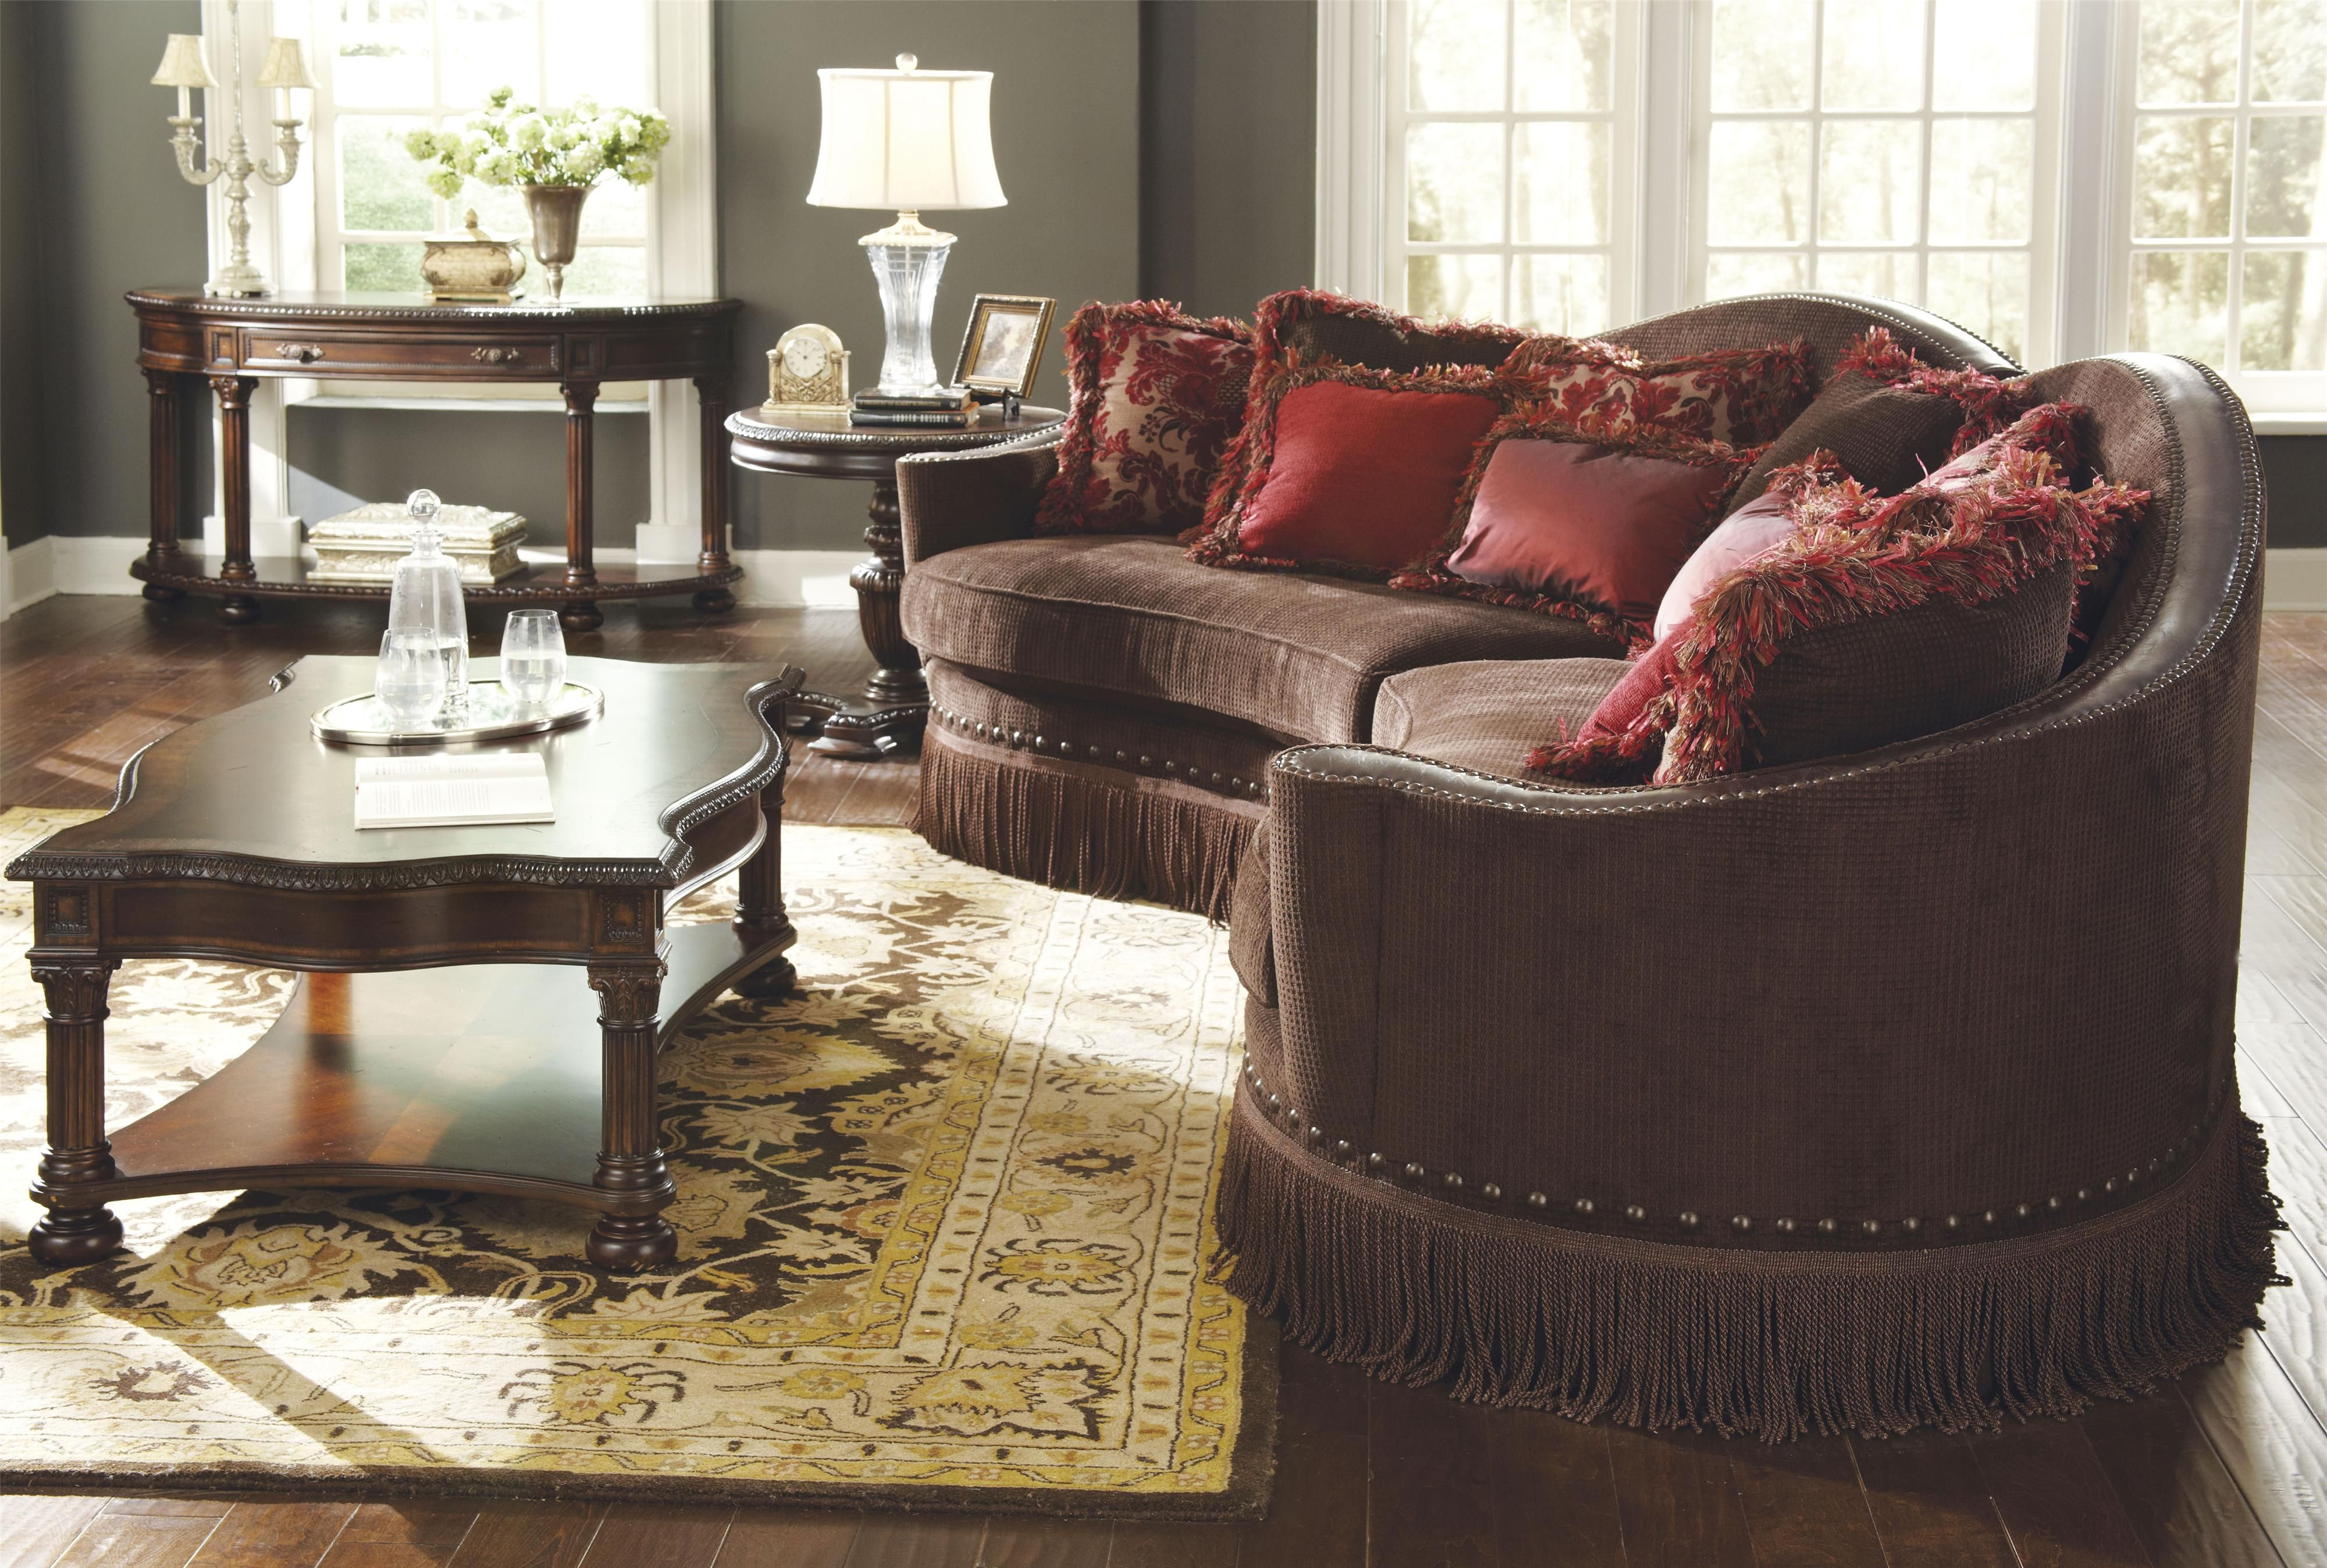 Capri Upholstered Furniture Isabella Sofa In Conversation Shape With Fringe  Skirt By A.R.T. Furniture Inc